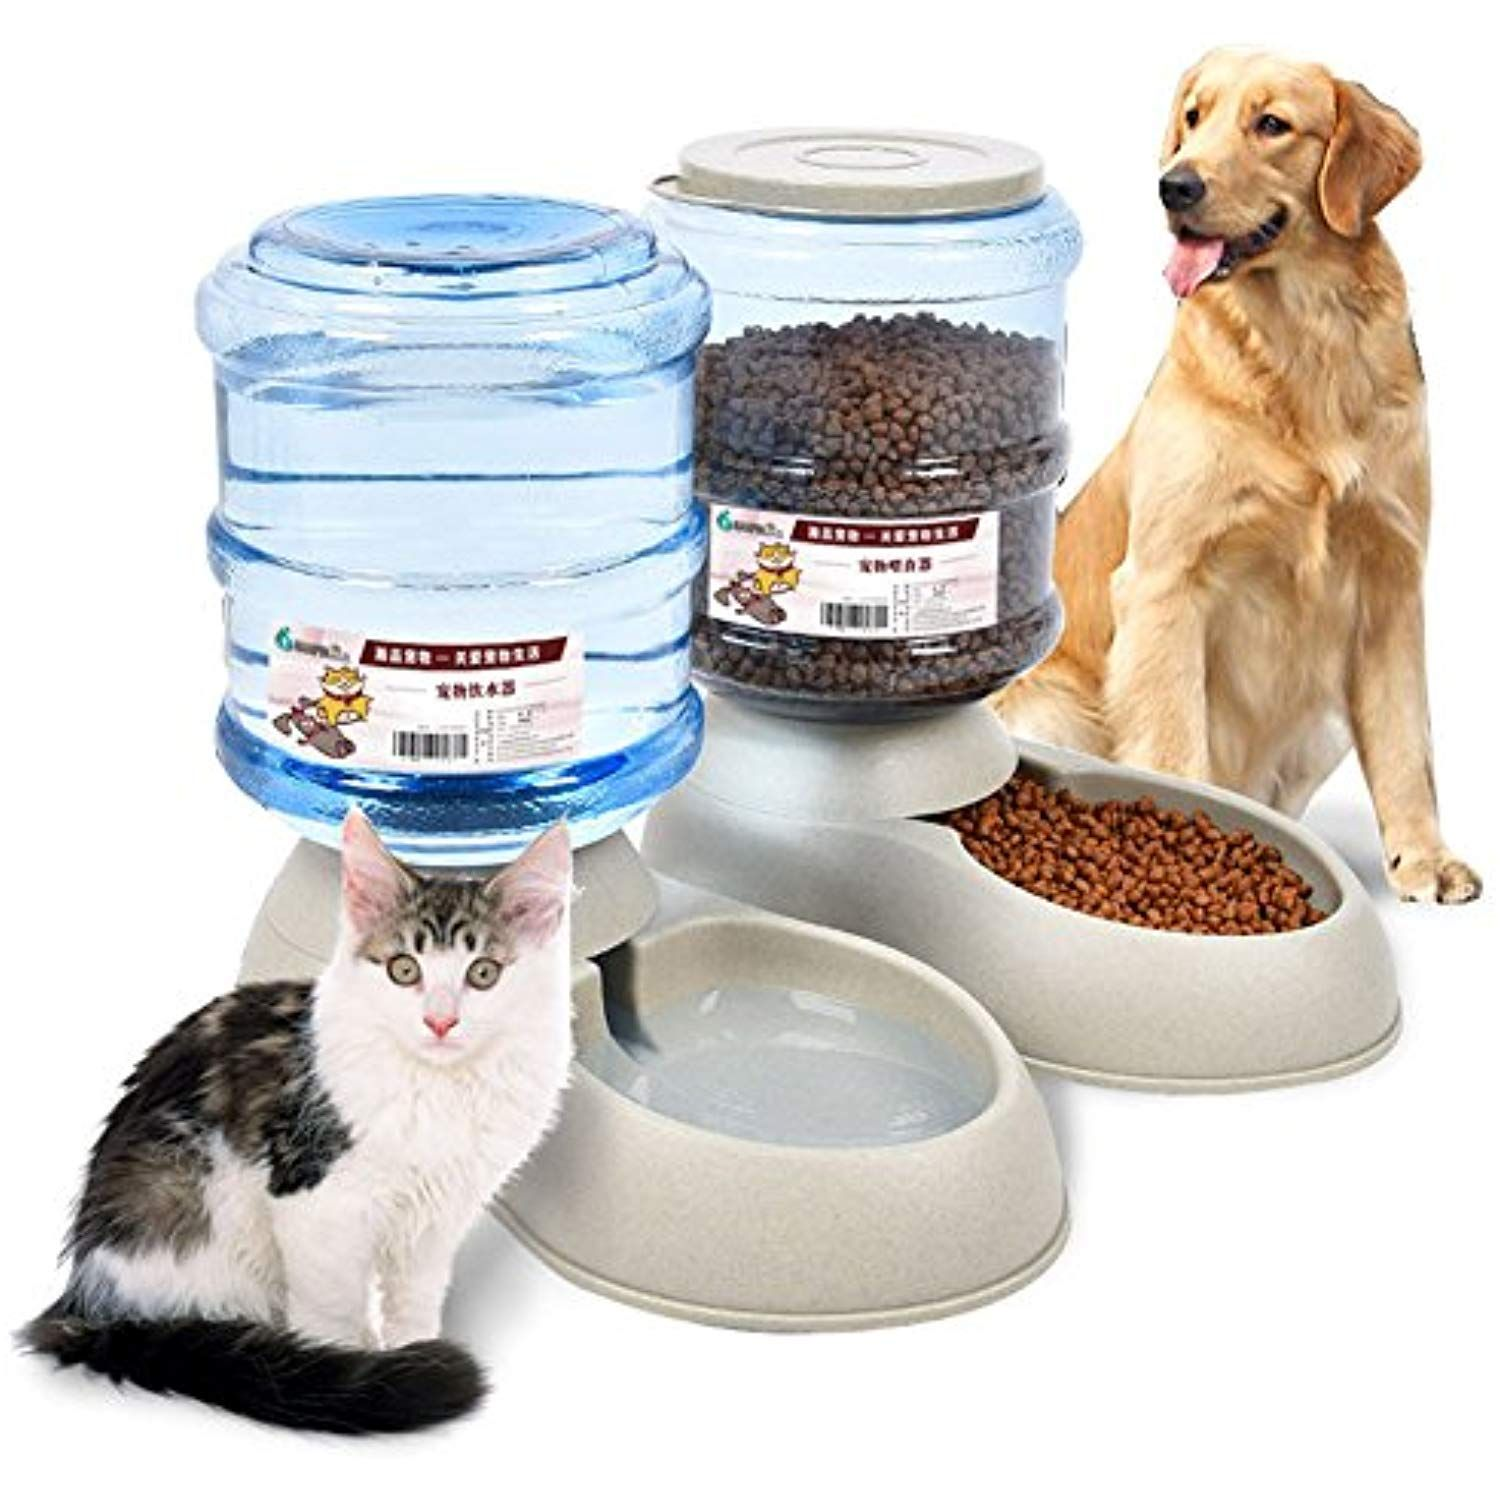 Srhome Automatic Pet Feeder Food Dispenser For Dogs And Cats Self